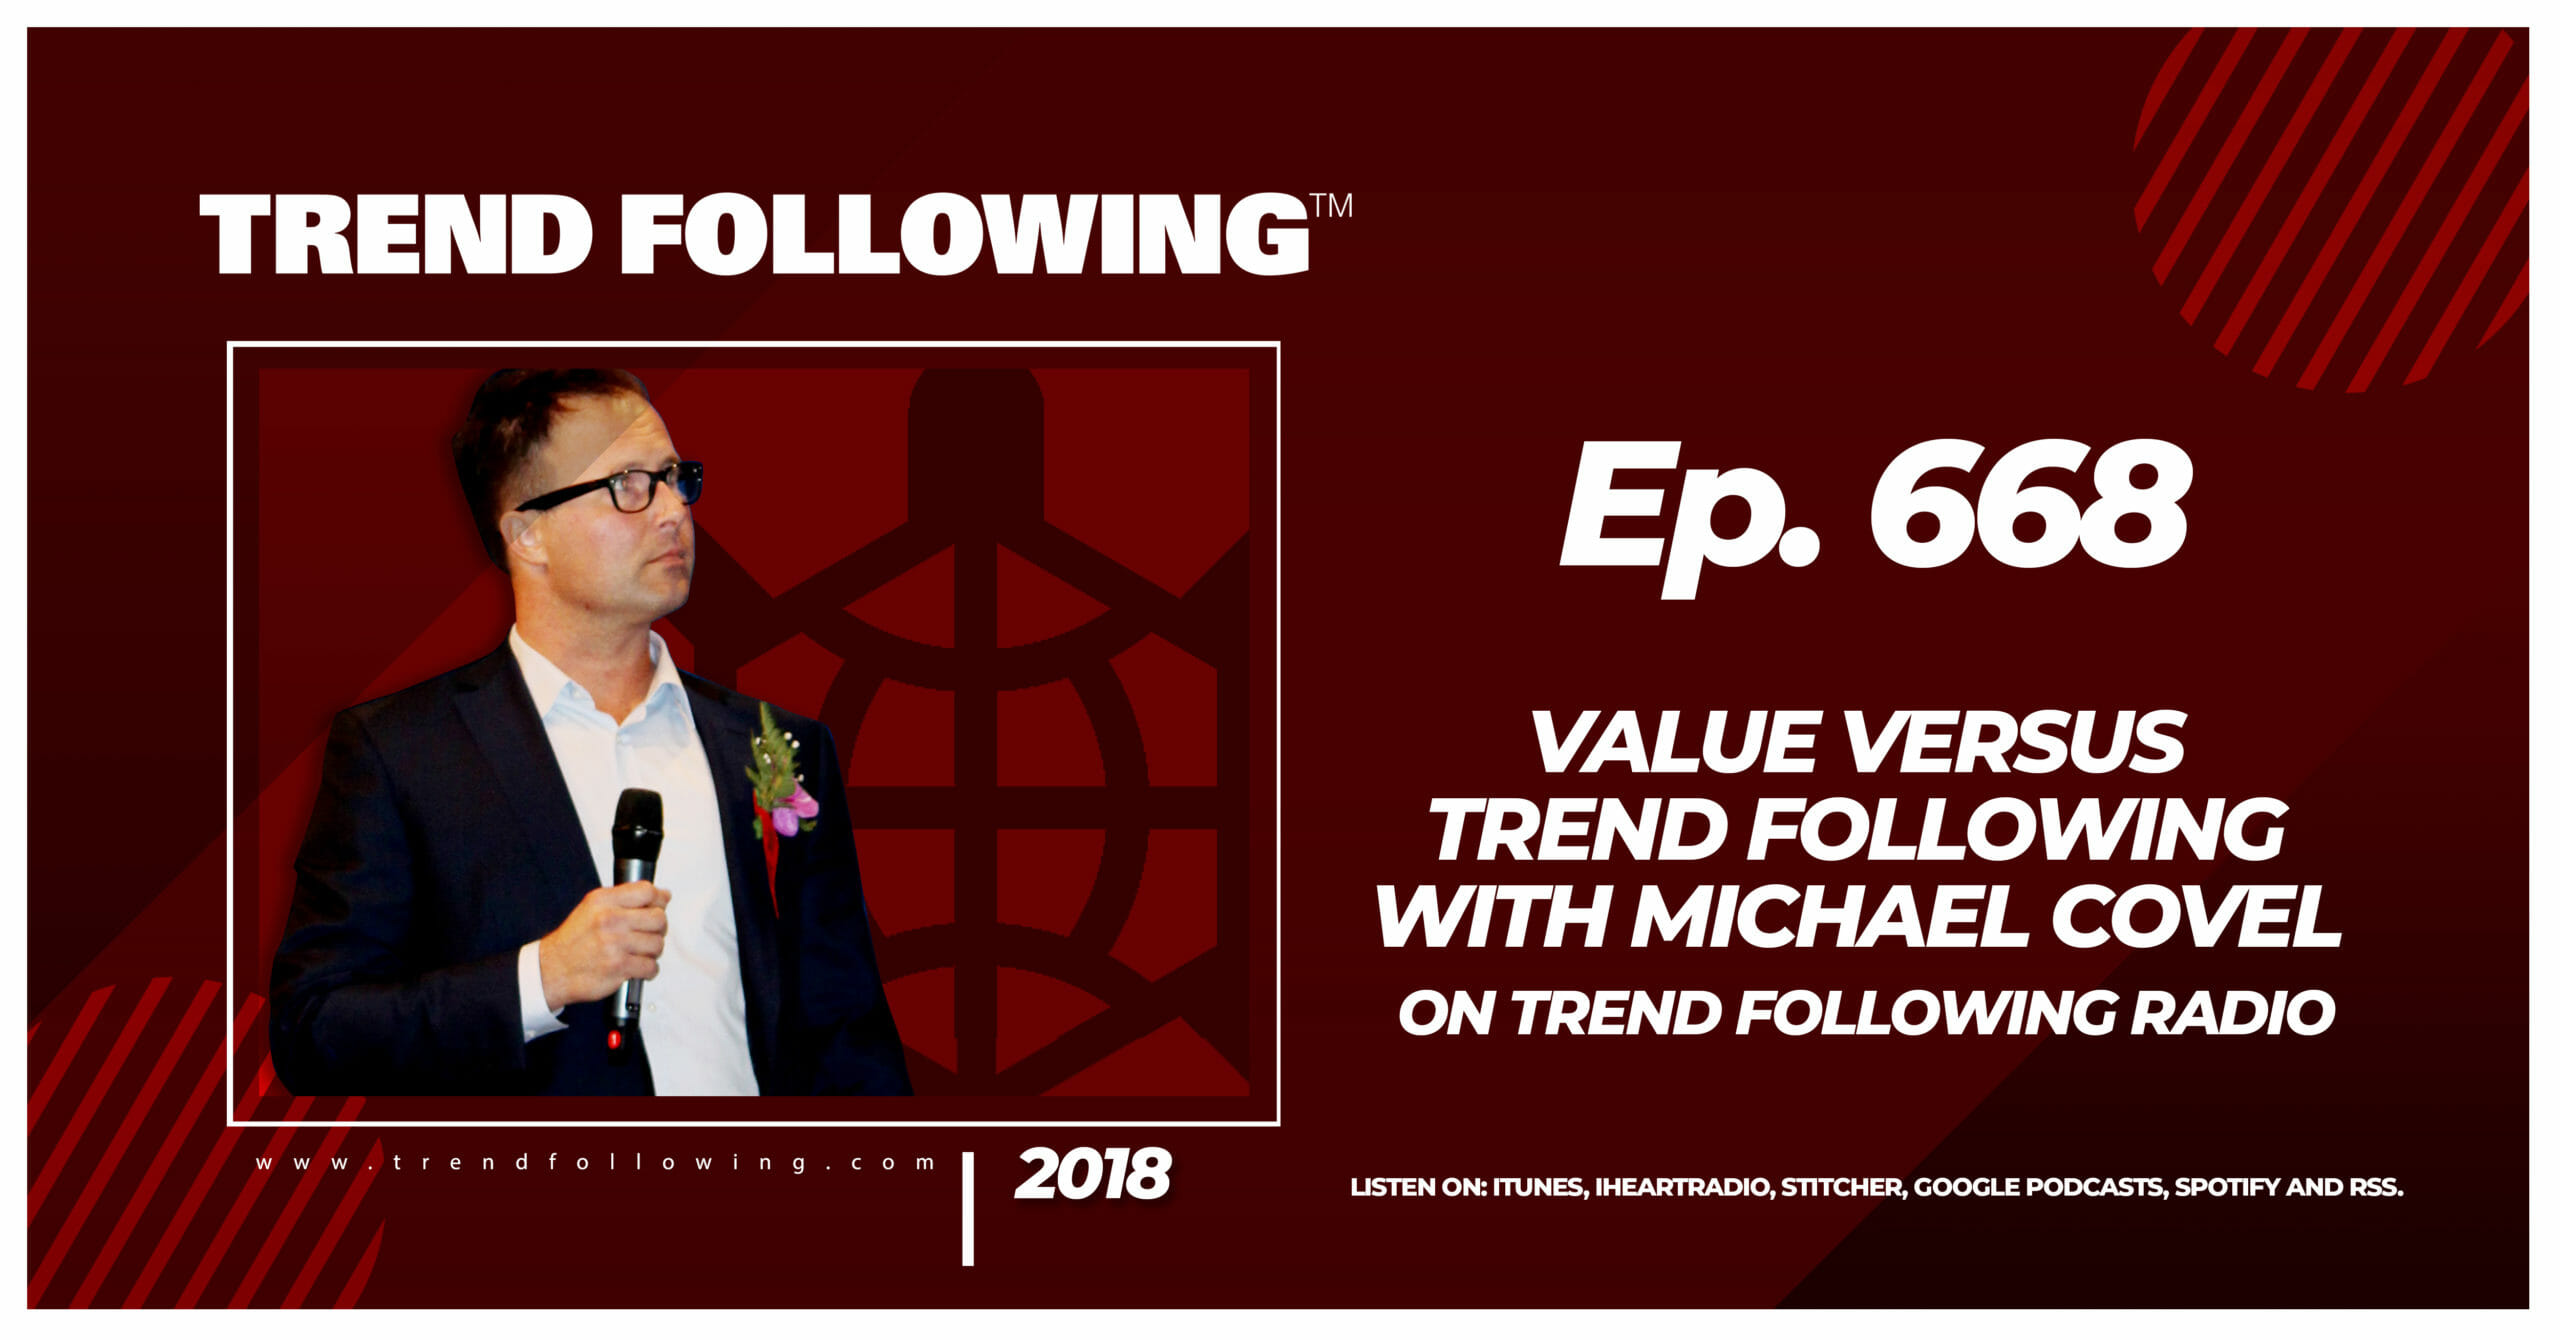 Value Versus Trend Following with Michael Covel